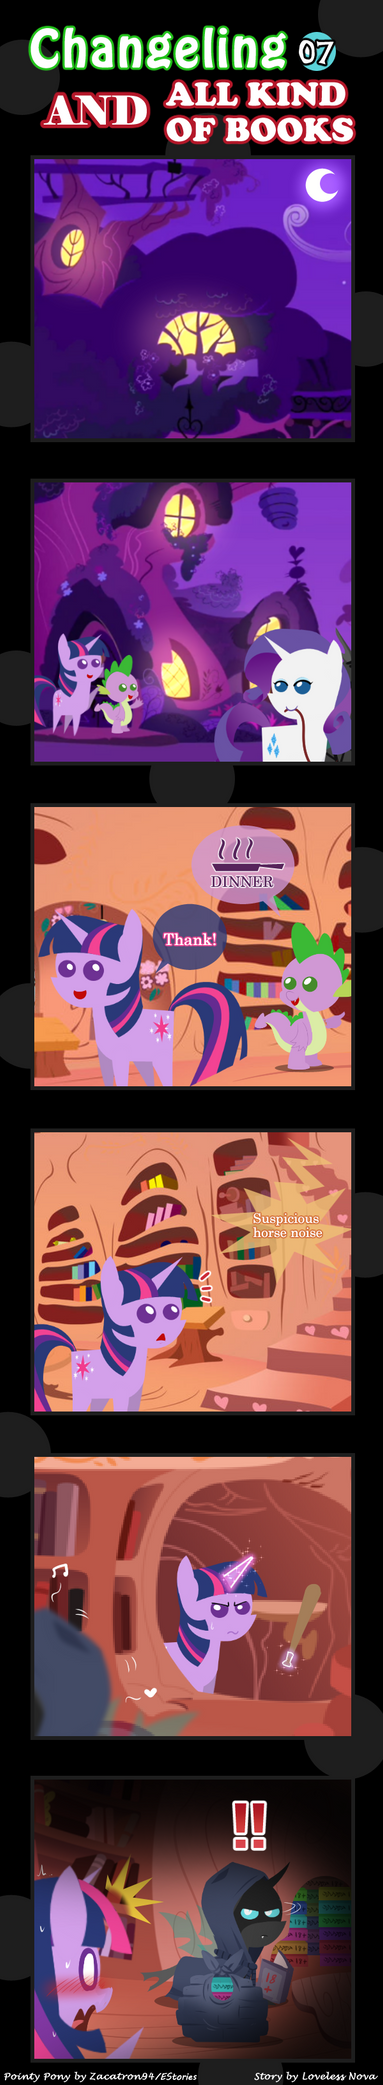 Changeling And All Kind Of Books 07 by vavacung